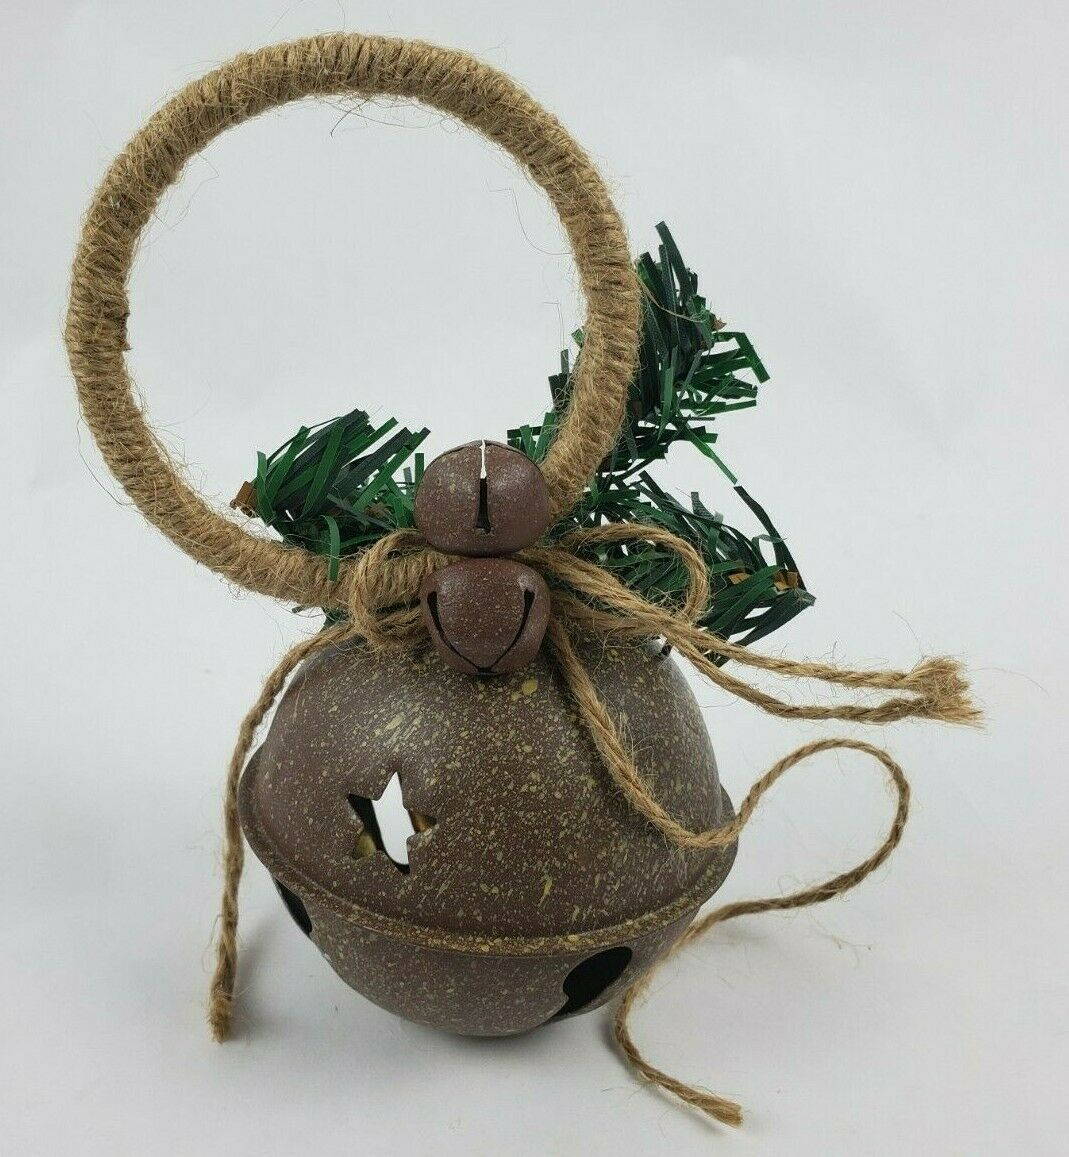 Primary image for Christmas Tree Ornament Large Bell Smaller Bells Sprig Woven Rope Ring Handmade